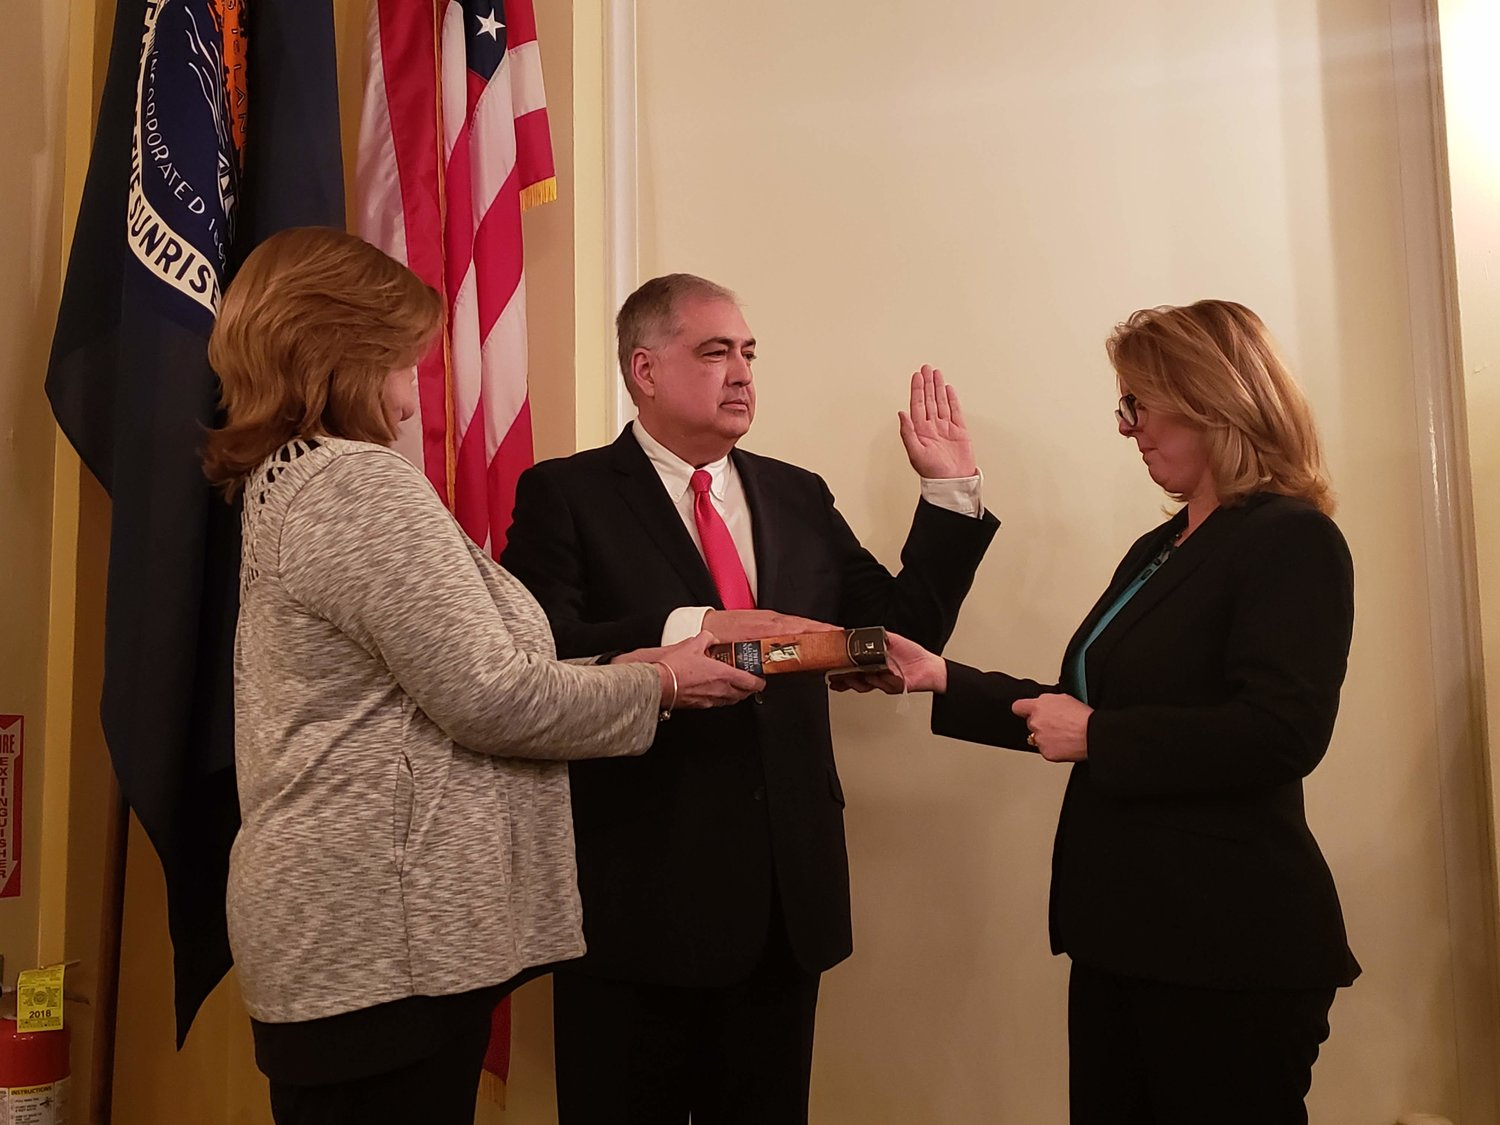 Deputy Mayor Jorge Martinez, joined by his wife, Christine, left, was sworn in by Nassau County Legislator Debra Mulé.